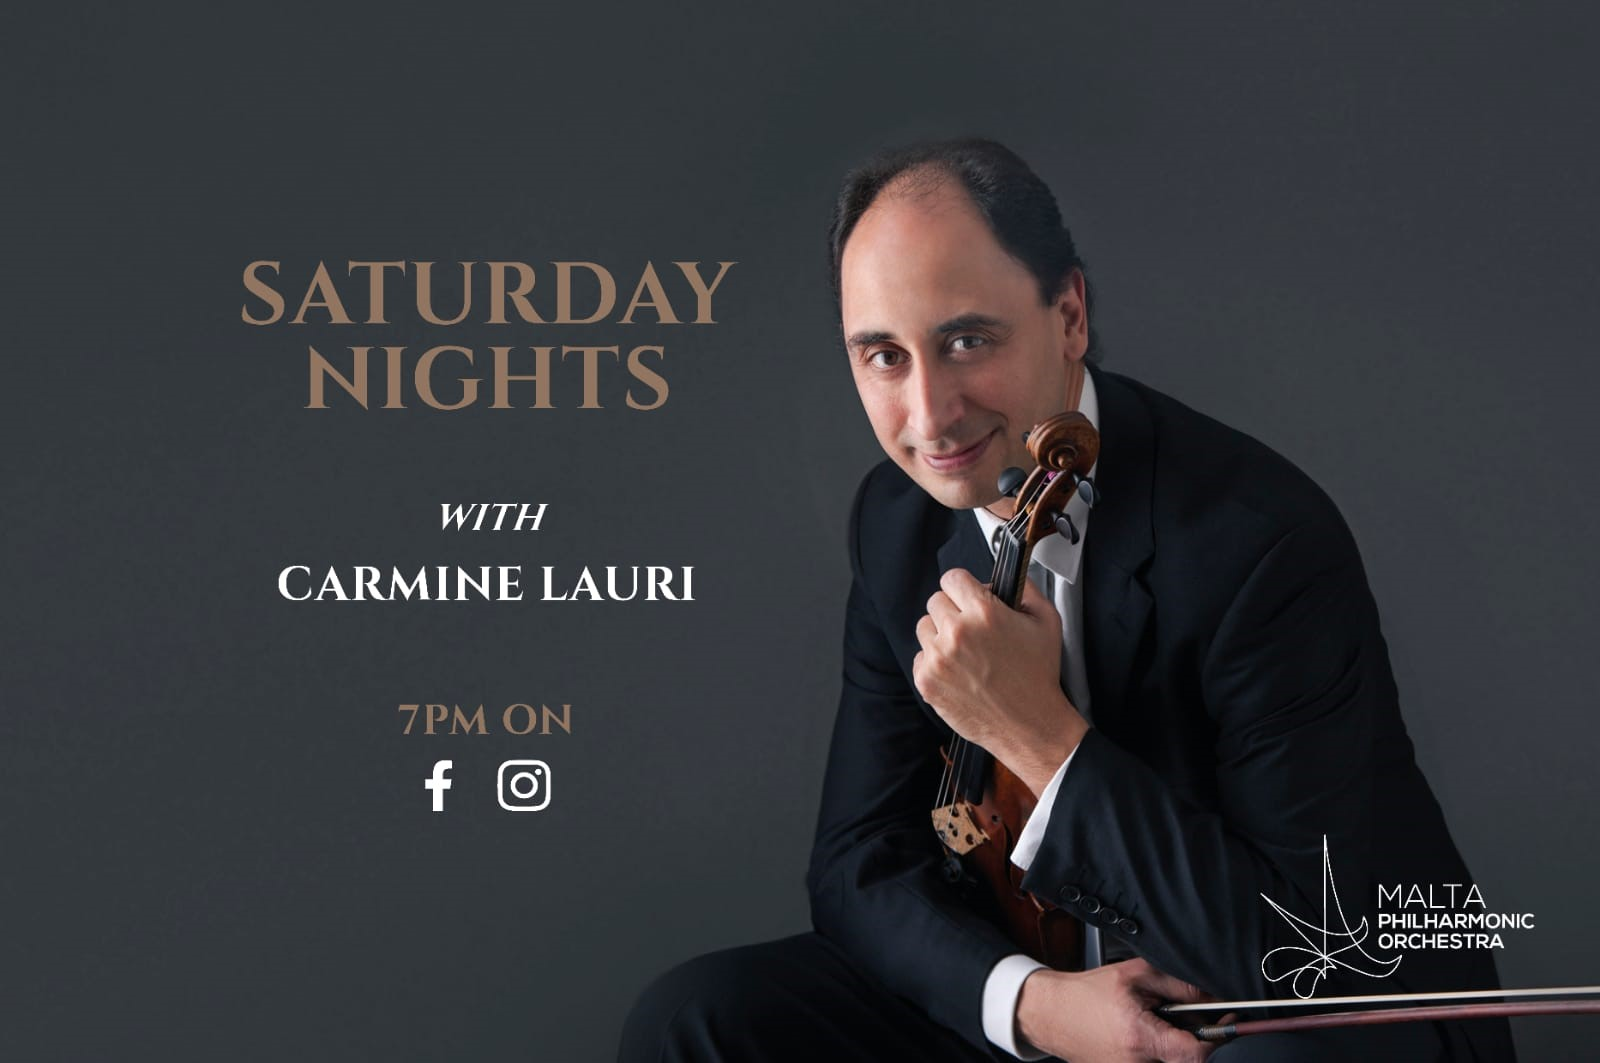 Saturday Nights with Carmine Lauri